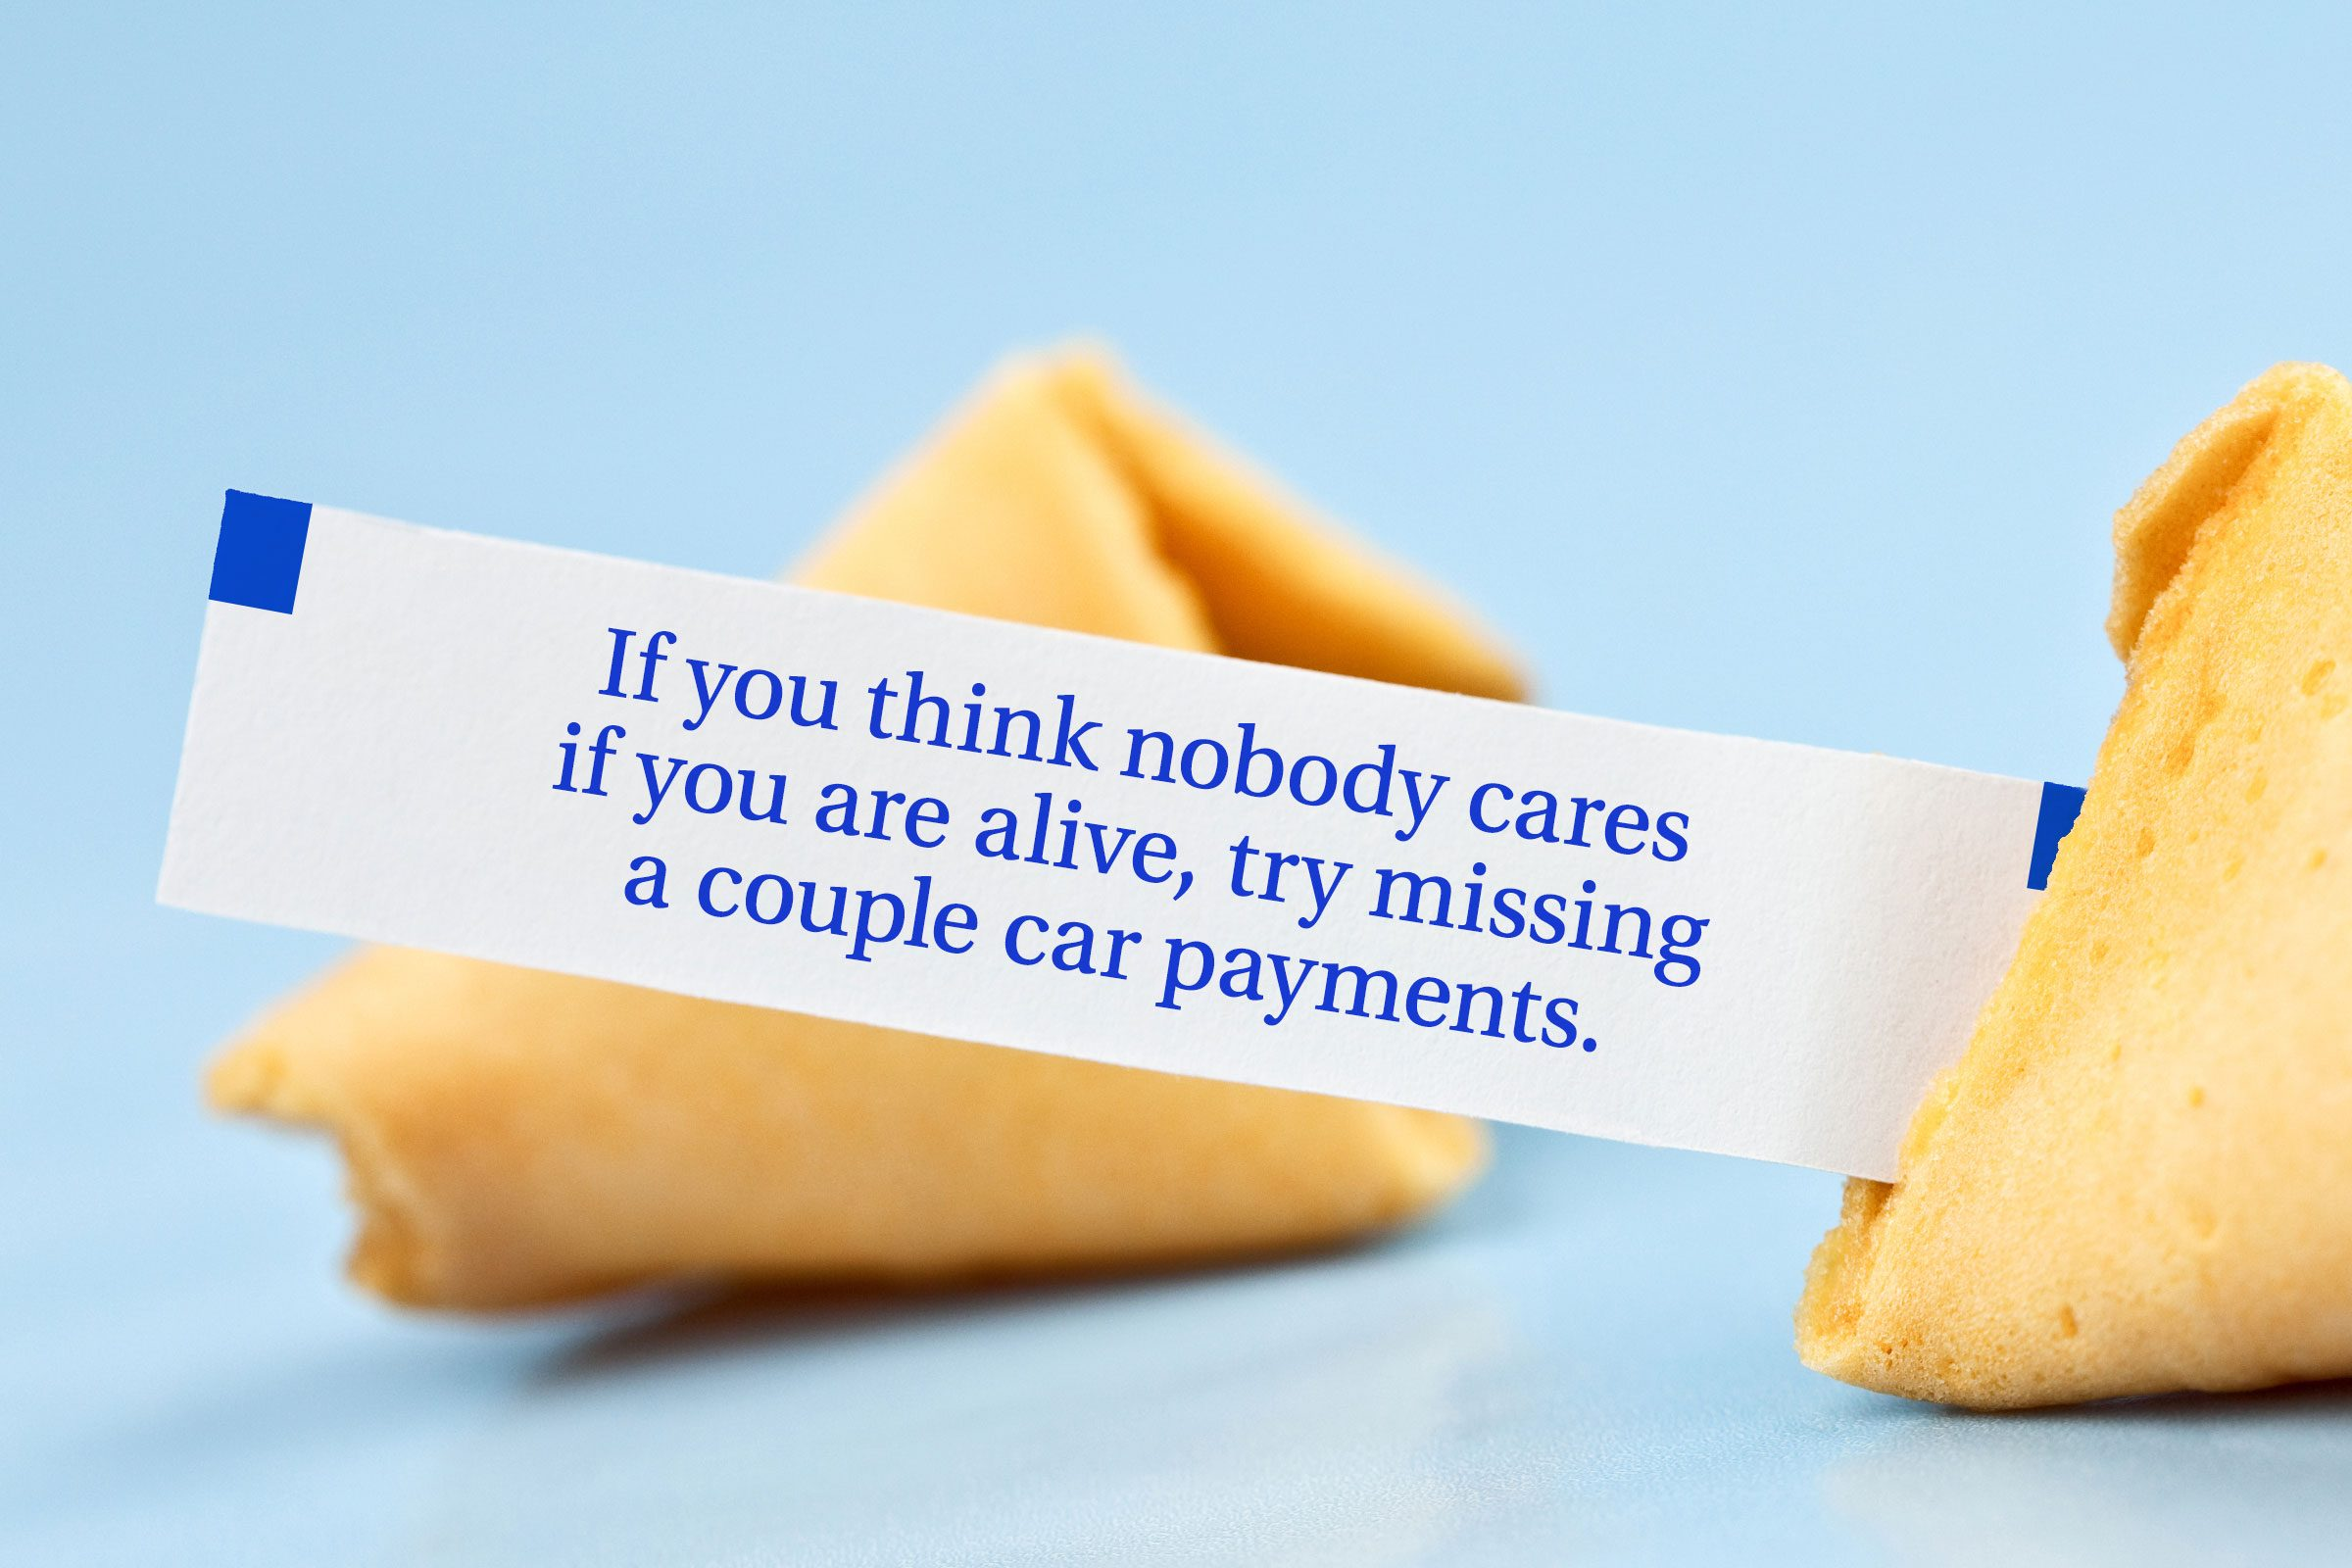 For image: If you think nobody cares if you are alive, try missing a couple of car payments.